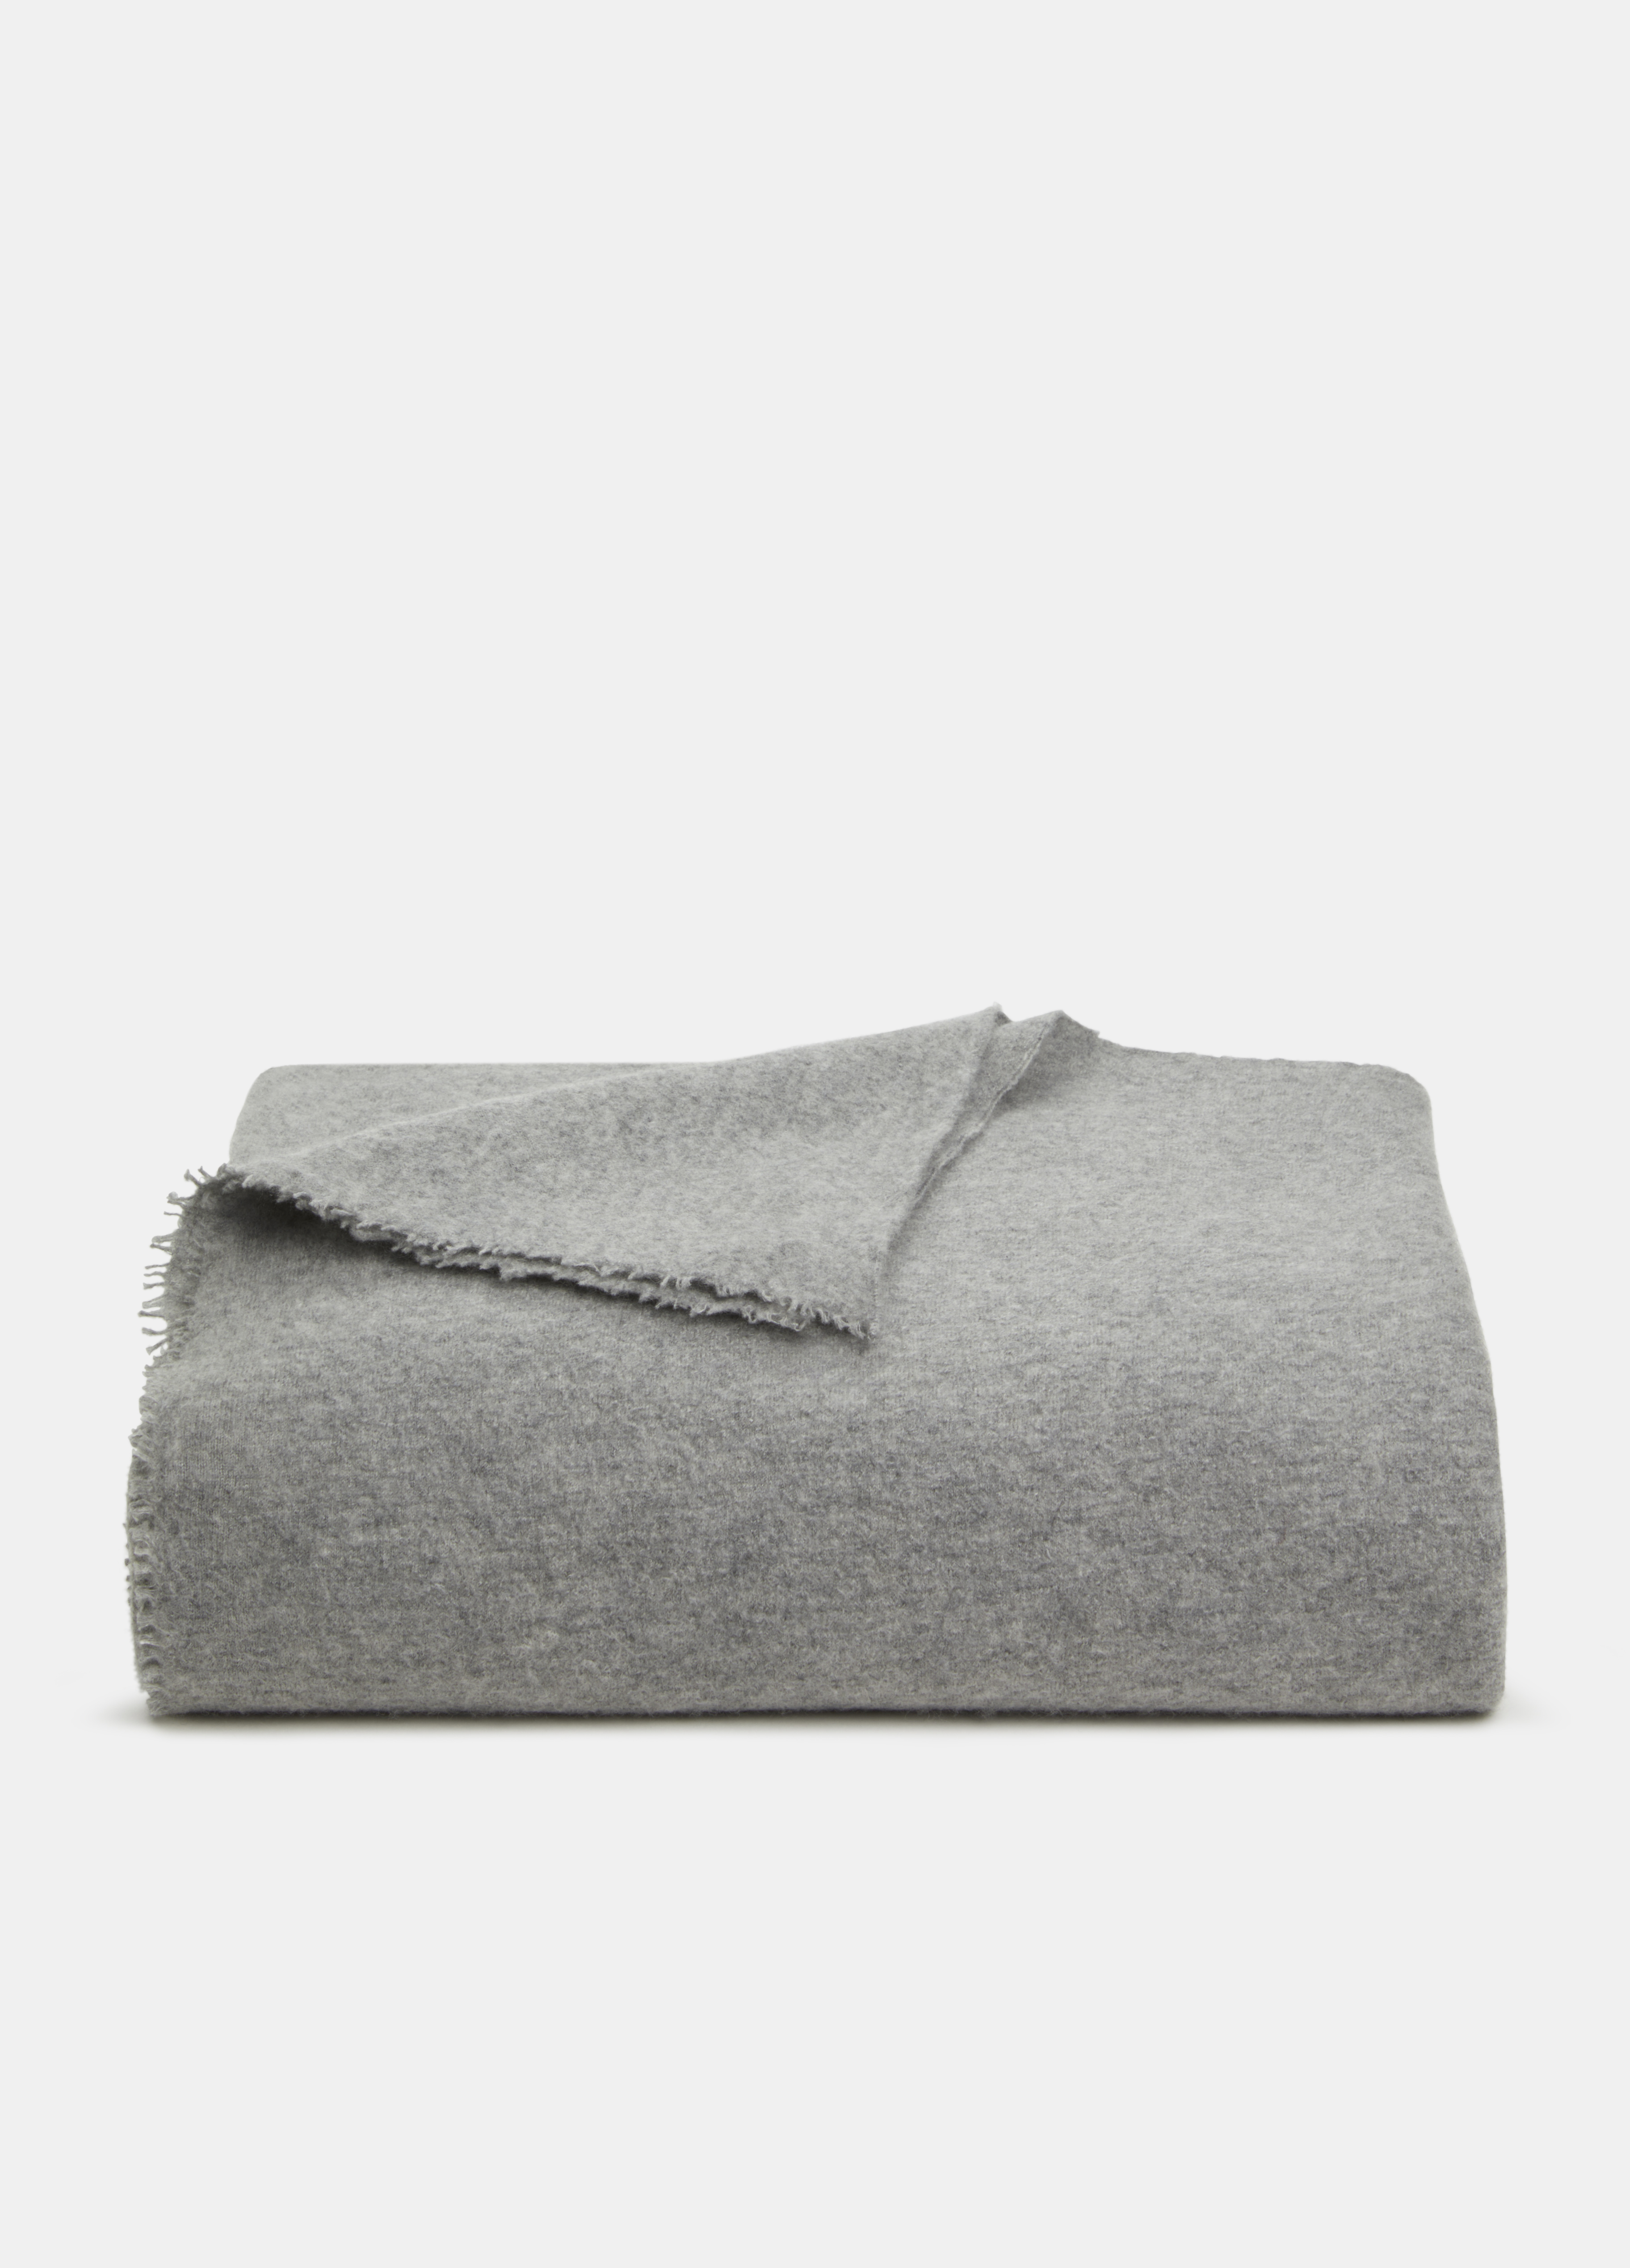 Boiled Cashmere Lounge Blanket